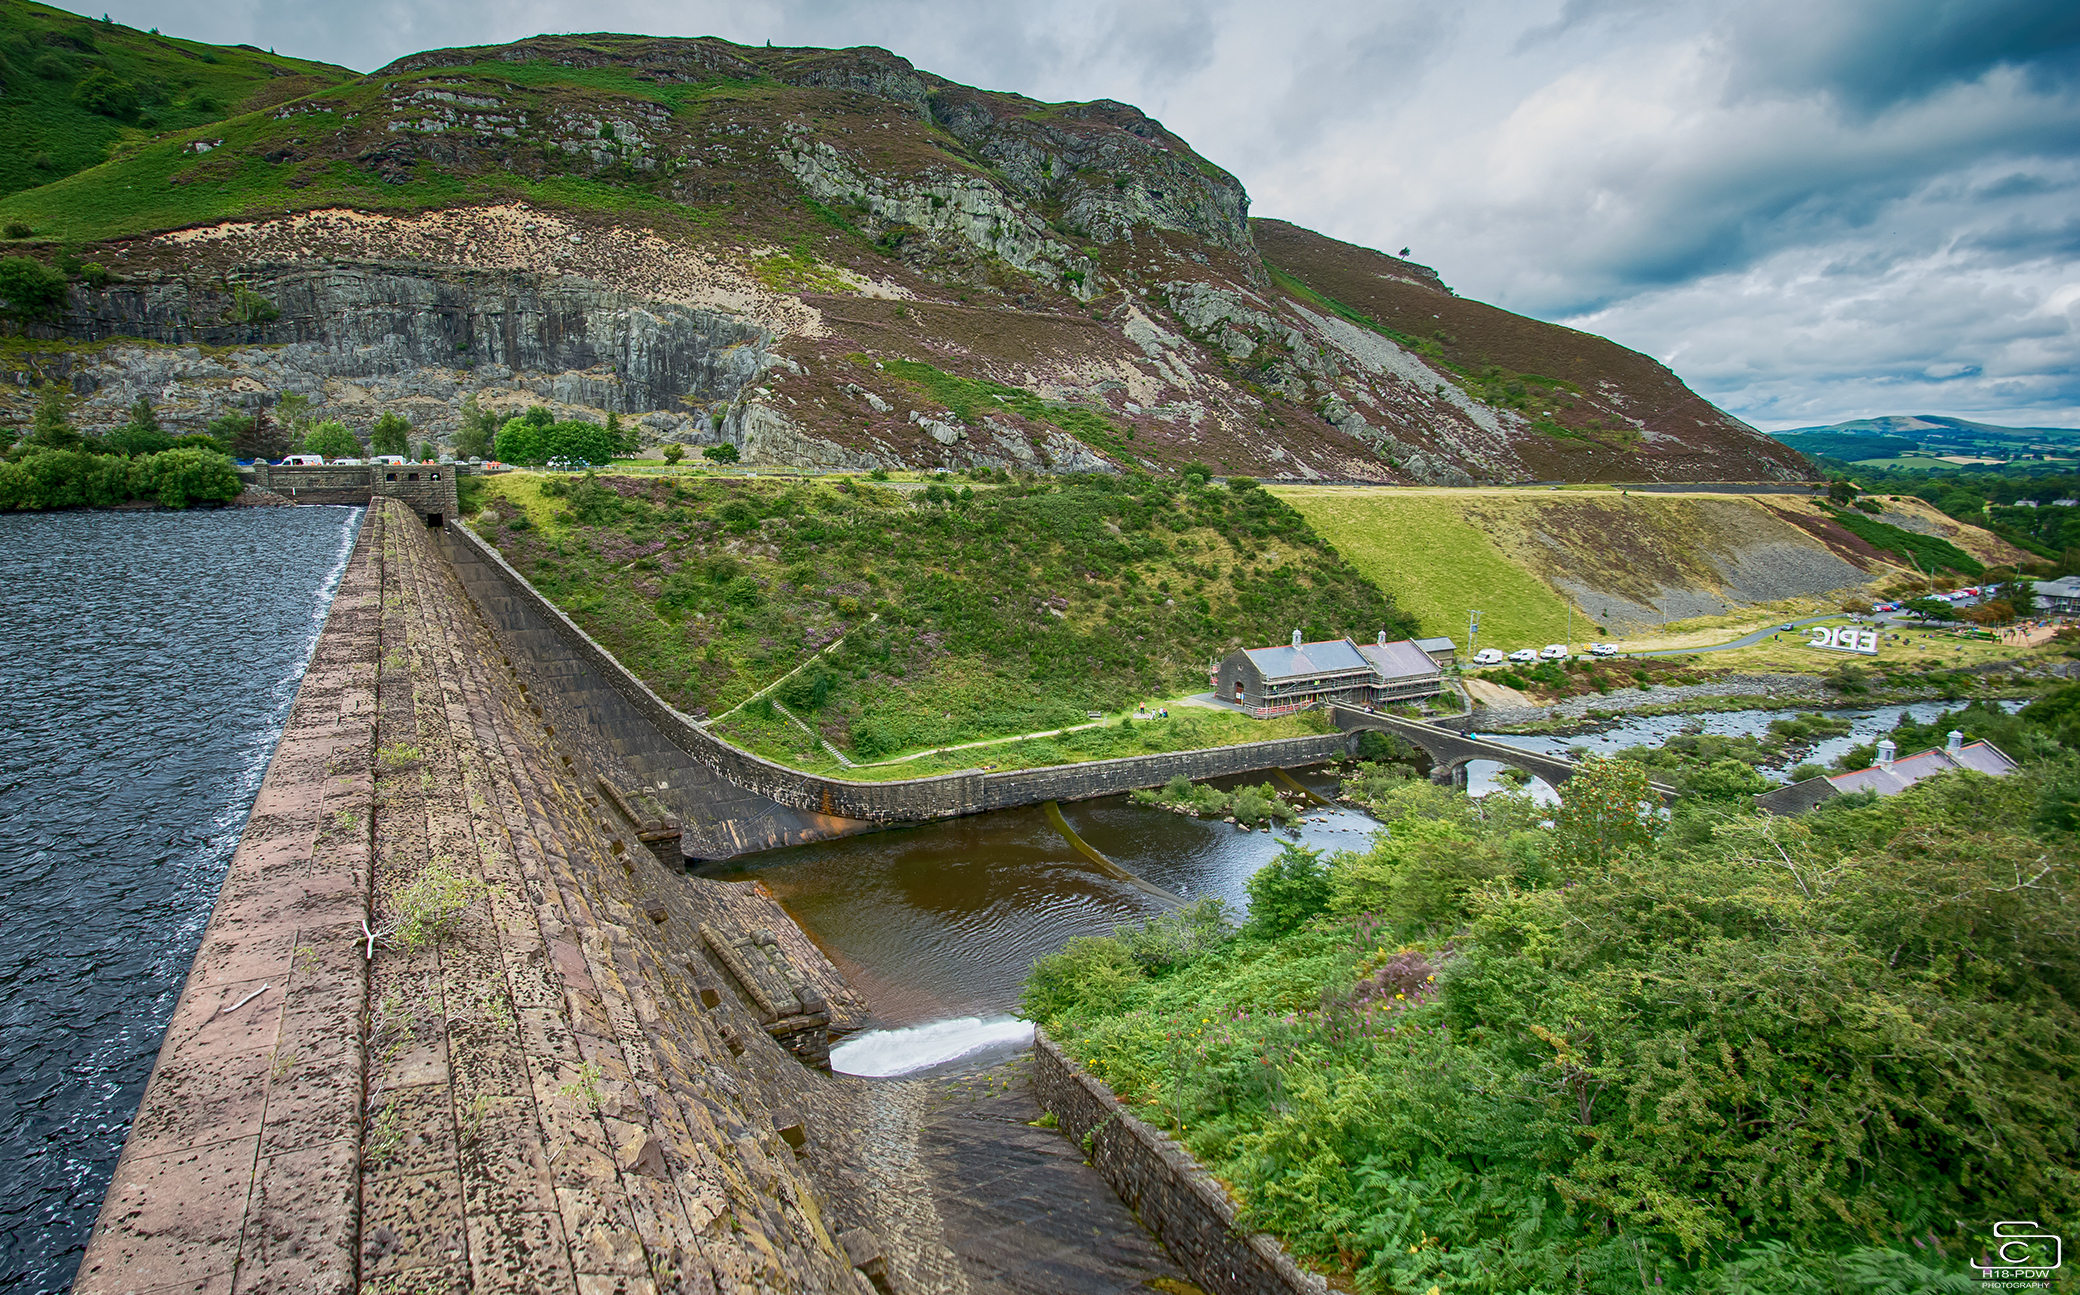 Epic Elan Valley from the dam.